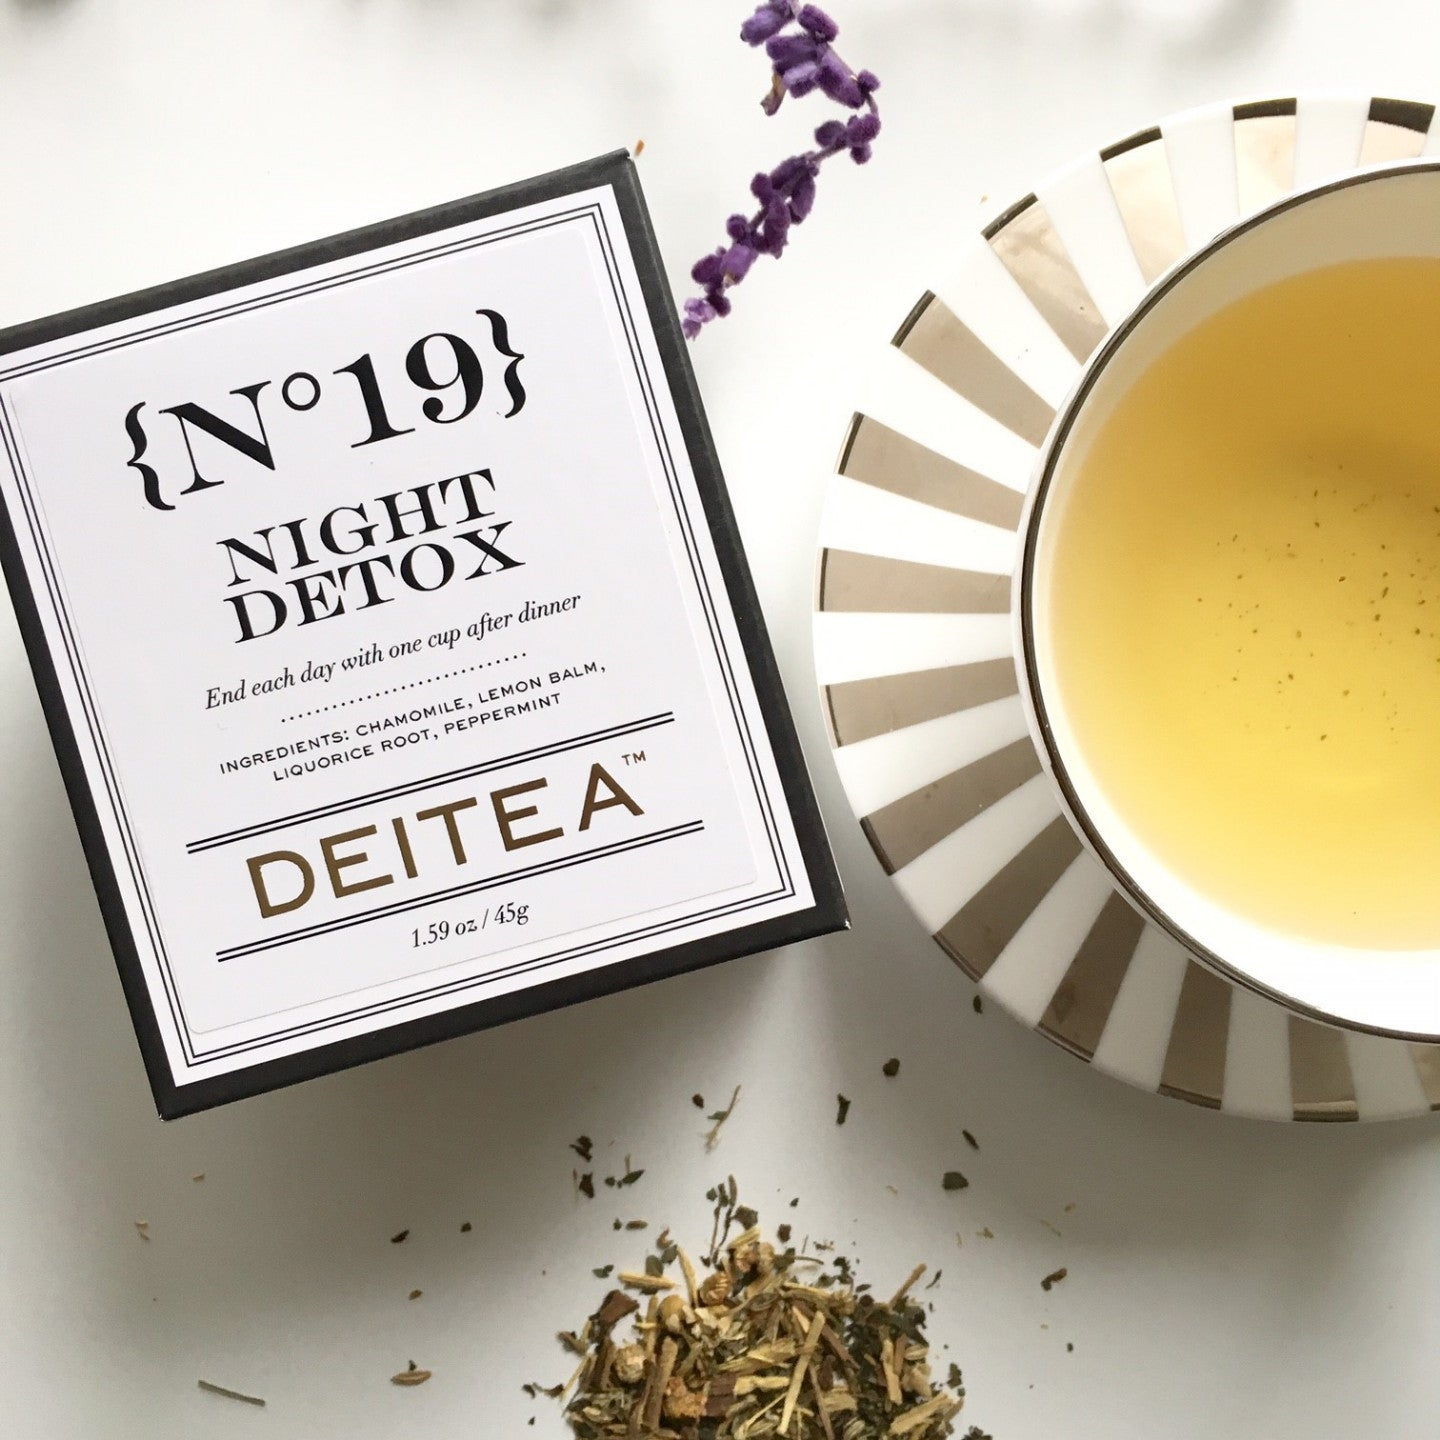 {No.19} Night Detox